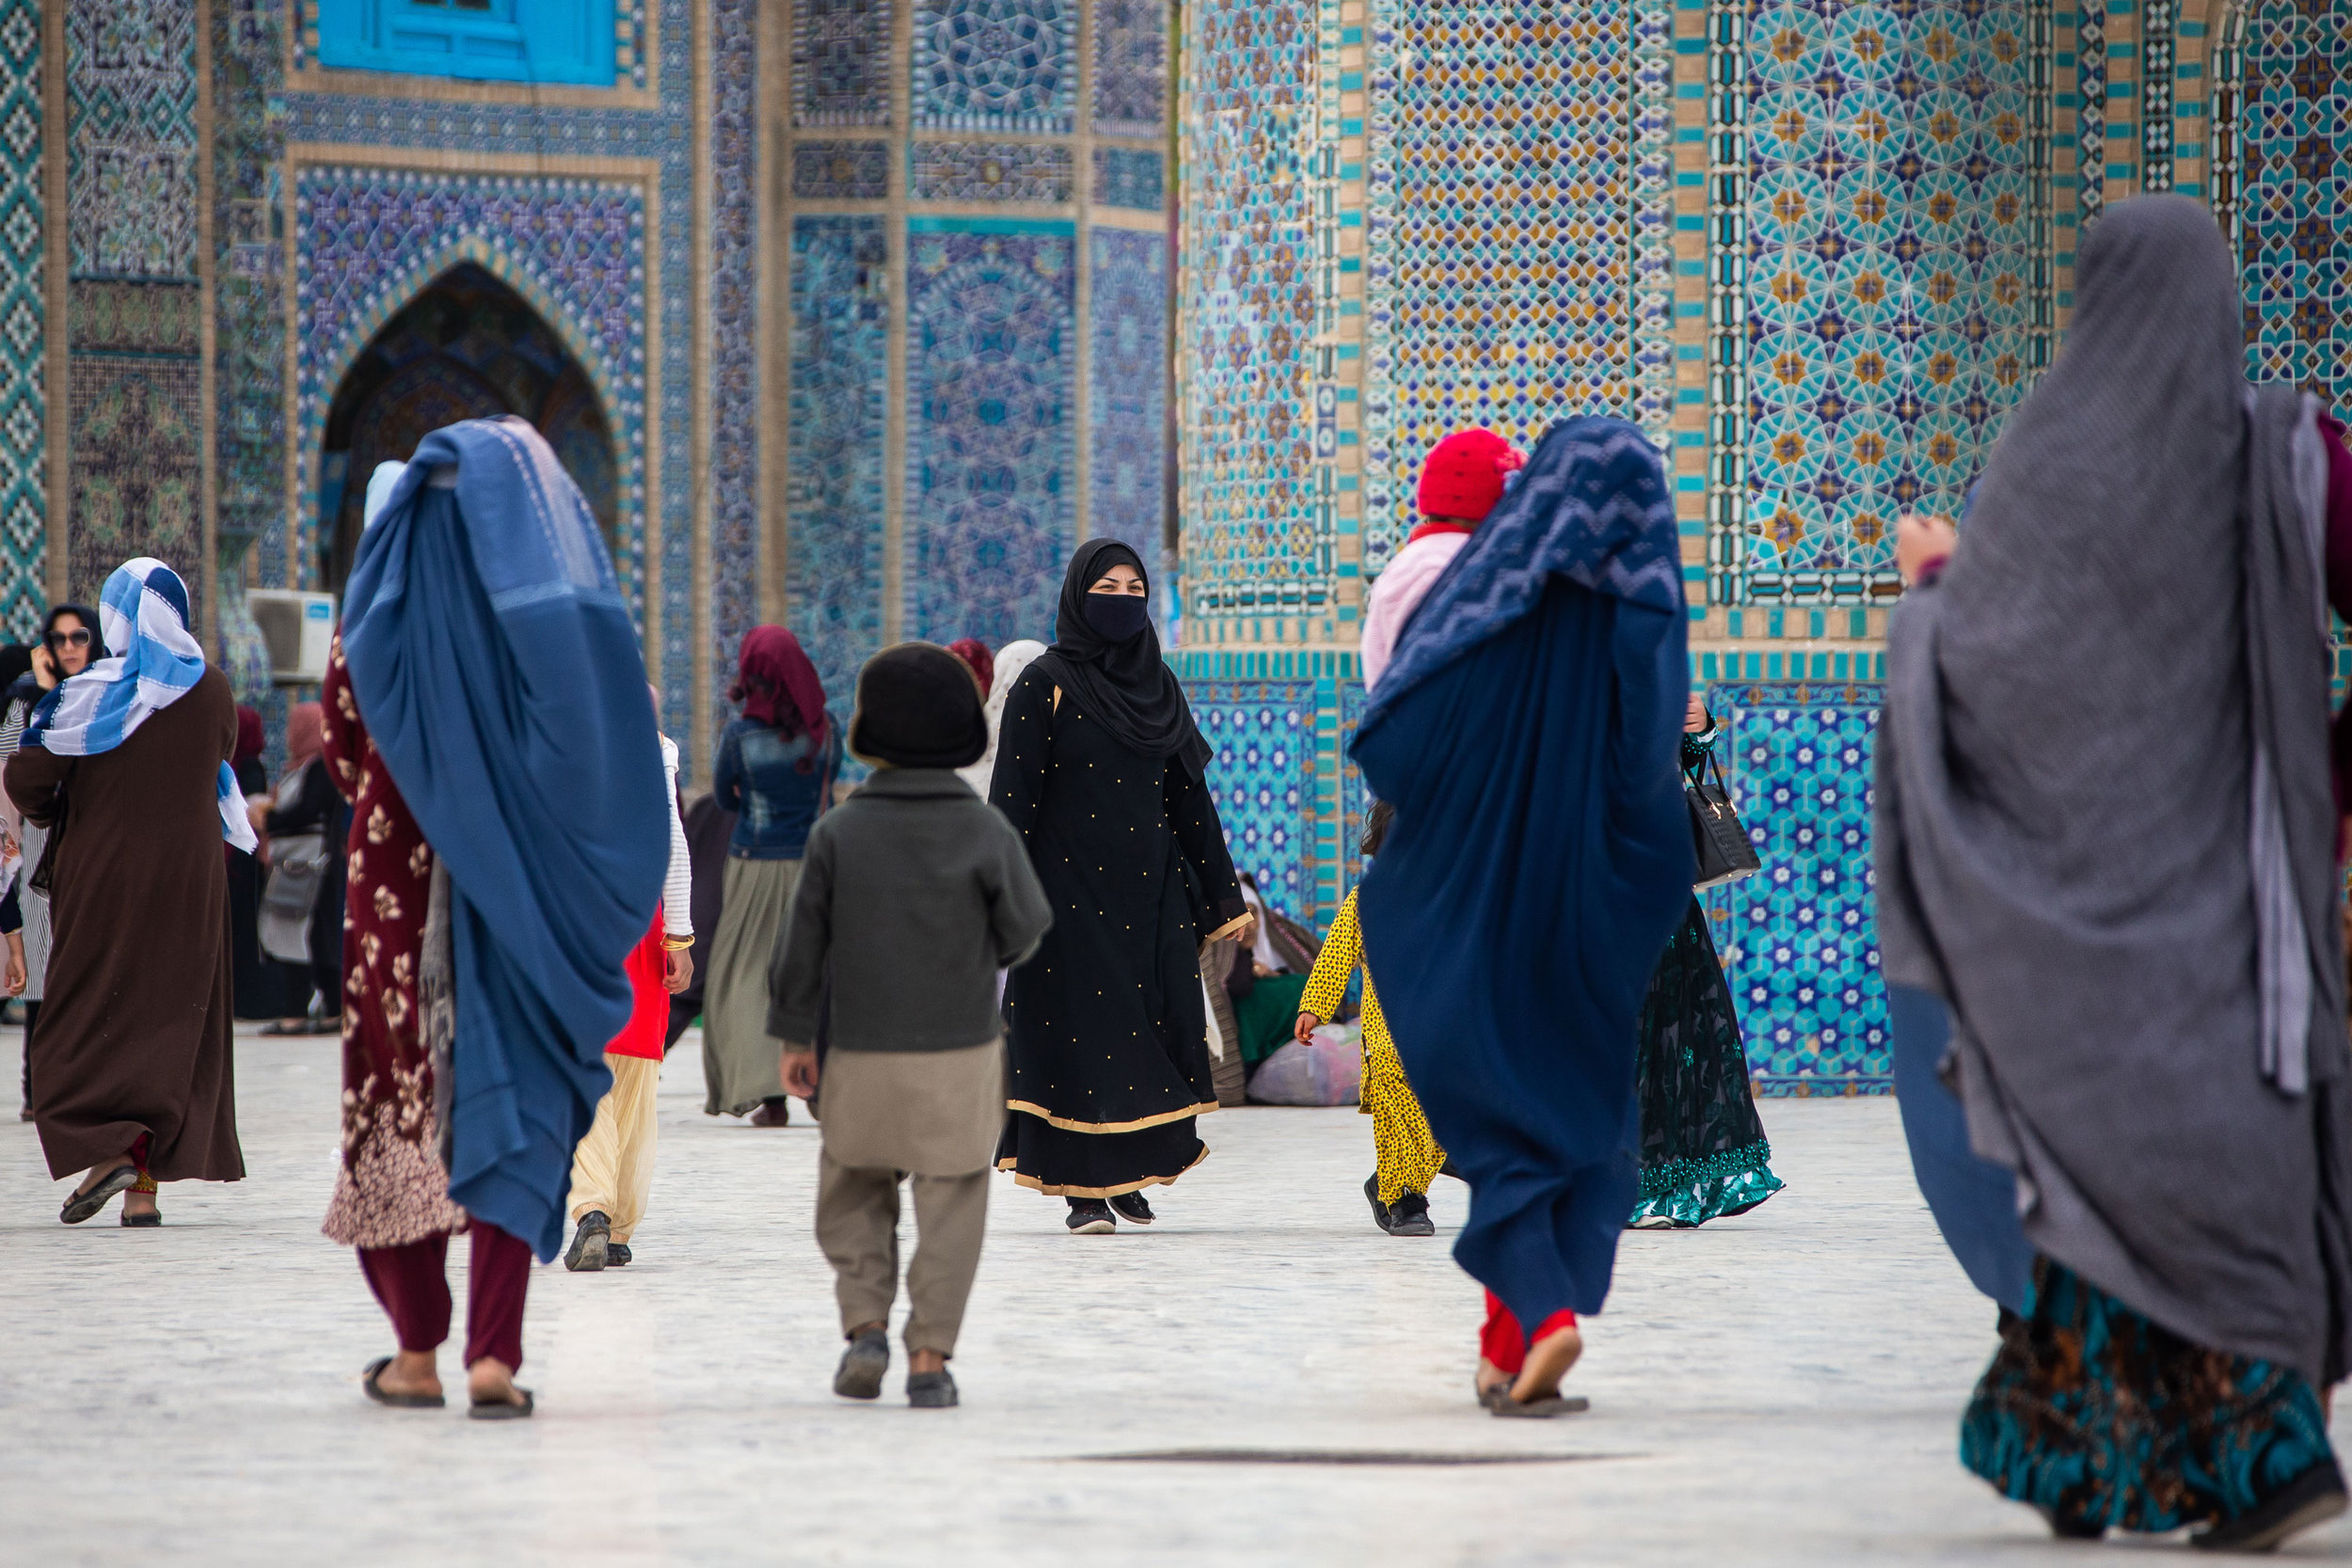 Women at the Blue Mosque in Mazar-i-Sharif